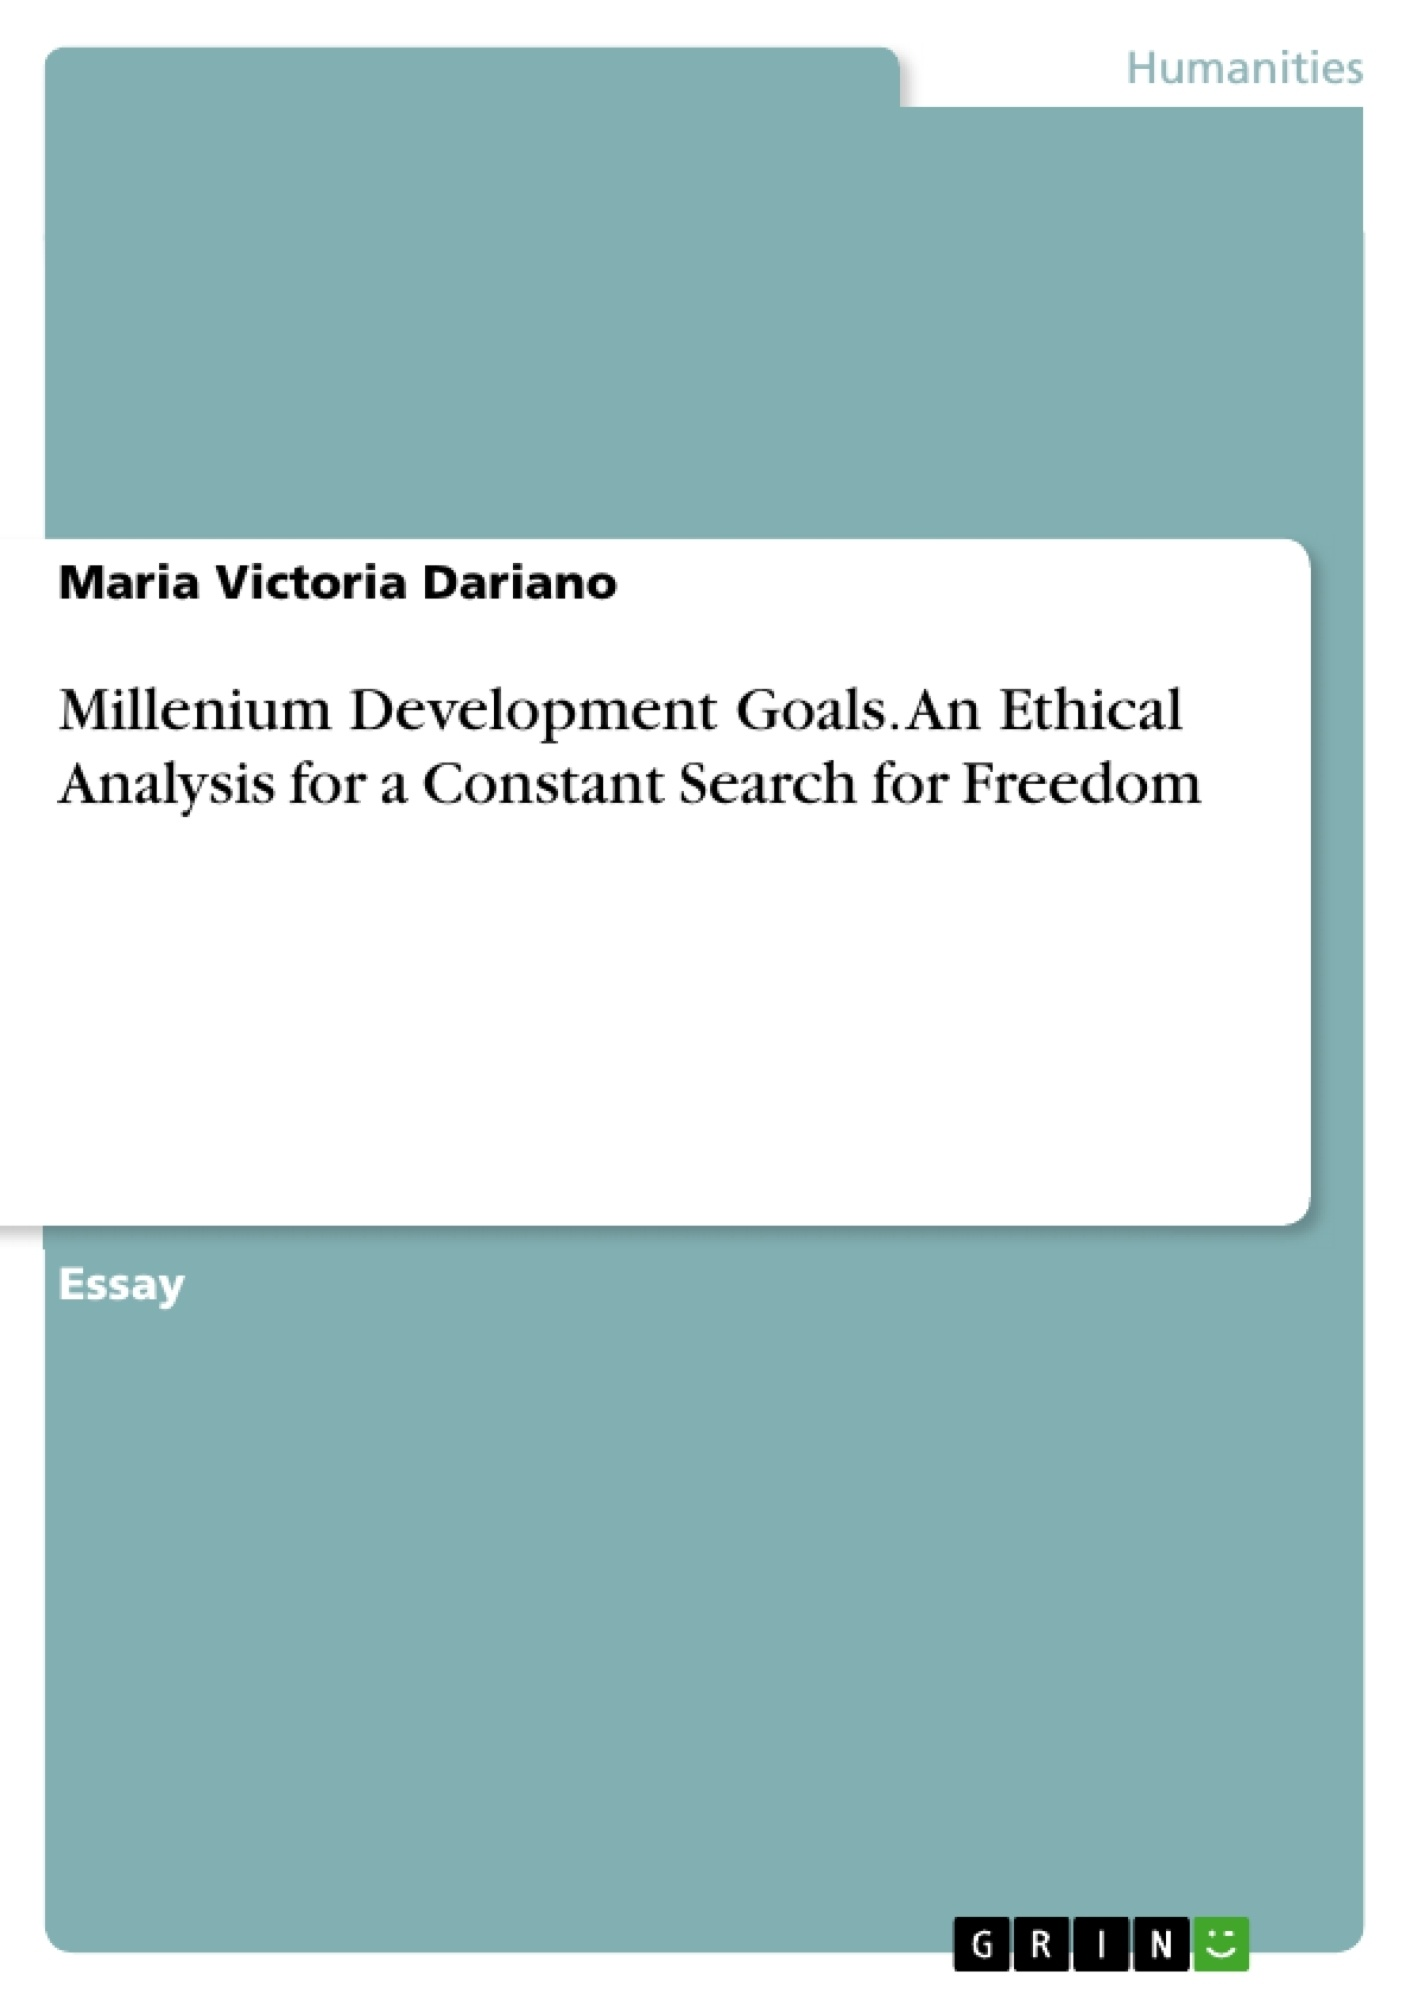 Title: Millenium Development Goals. An Ethical Analysis for a Constant Search for Freedom